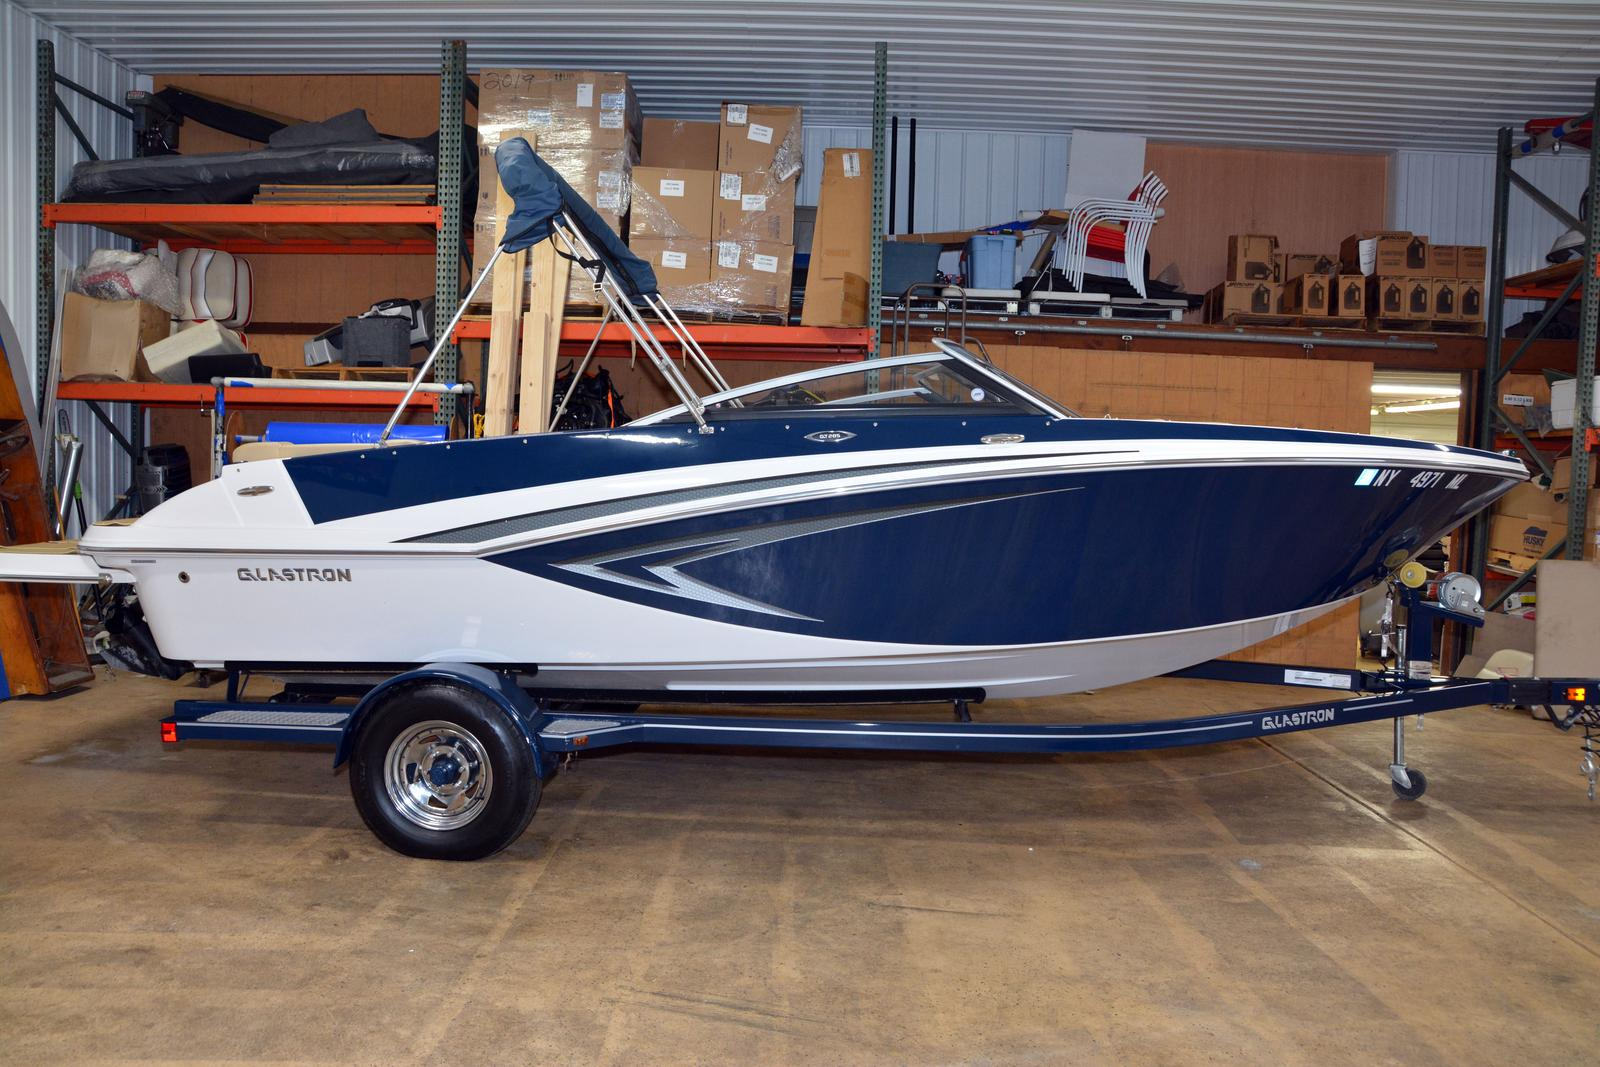 Inventory from Glastron and Sea-Doo Bryce Marine Rochester